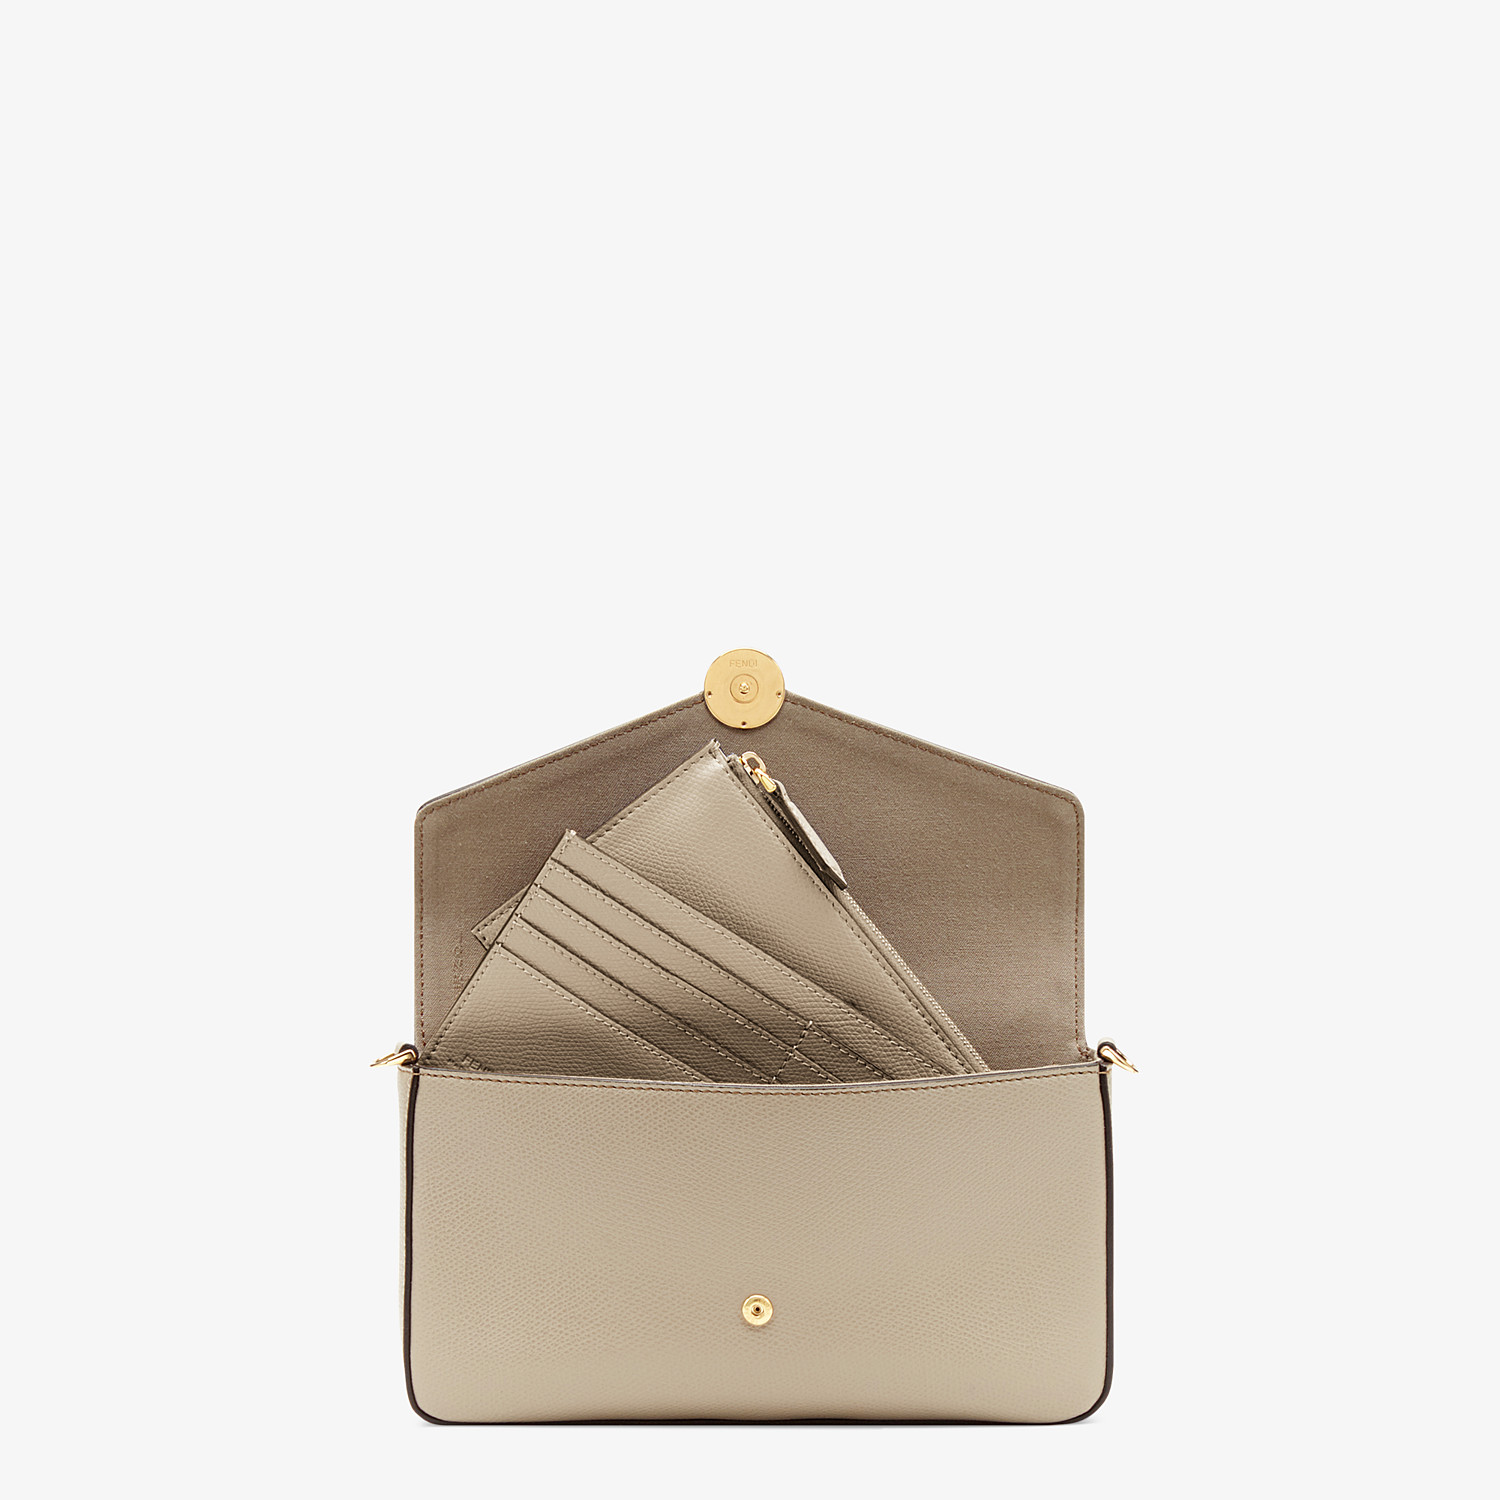 FENDI WALLET ON CHAIN WITH POUCHES - Beige leather minibag - view 6 detail